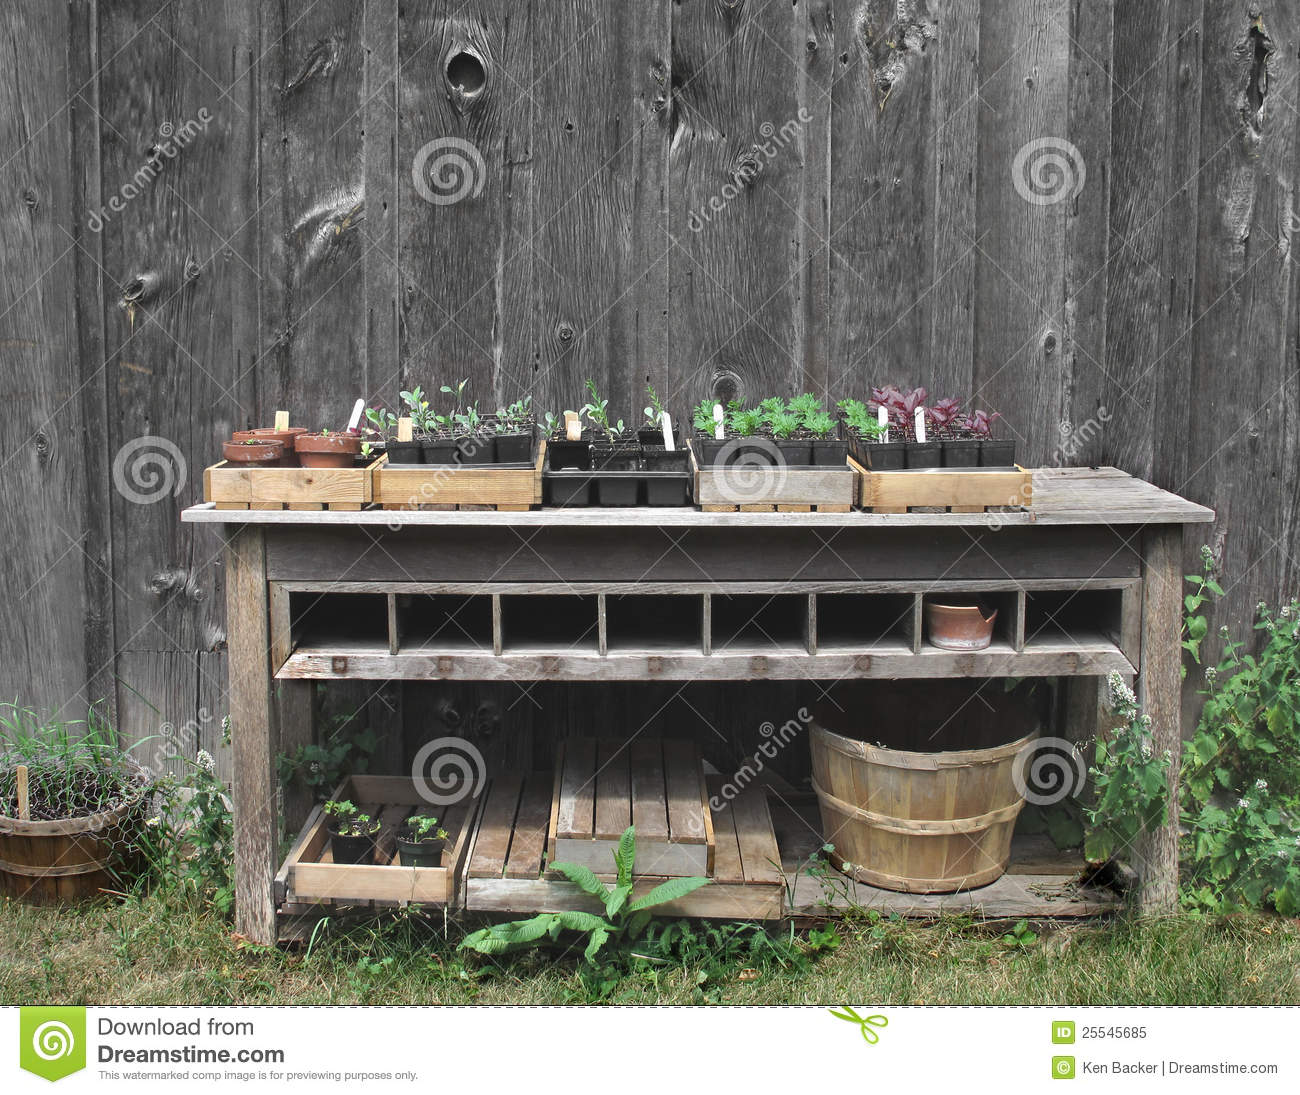 Outside Gardening Table With Plants Stock Image  Image